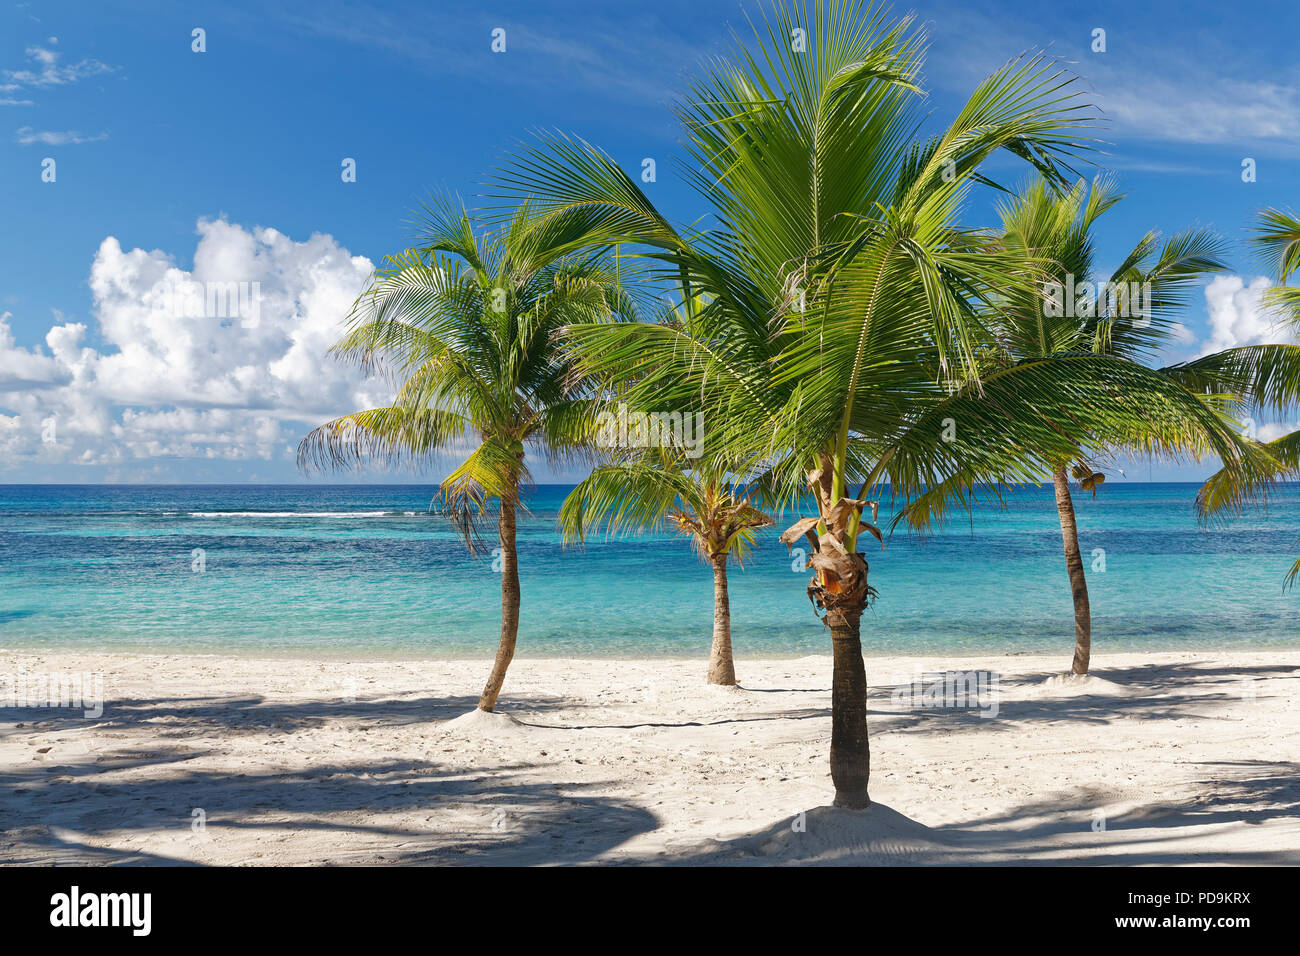 Dream beach, sandy beach with palm trees and turquoise sea, Parque Nacional del Este, Isle Saona, Caribbean, Dominican Republic - Stock Image